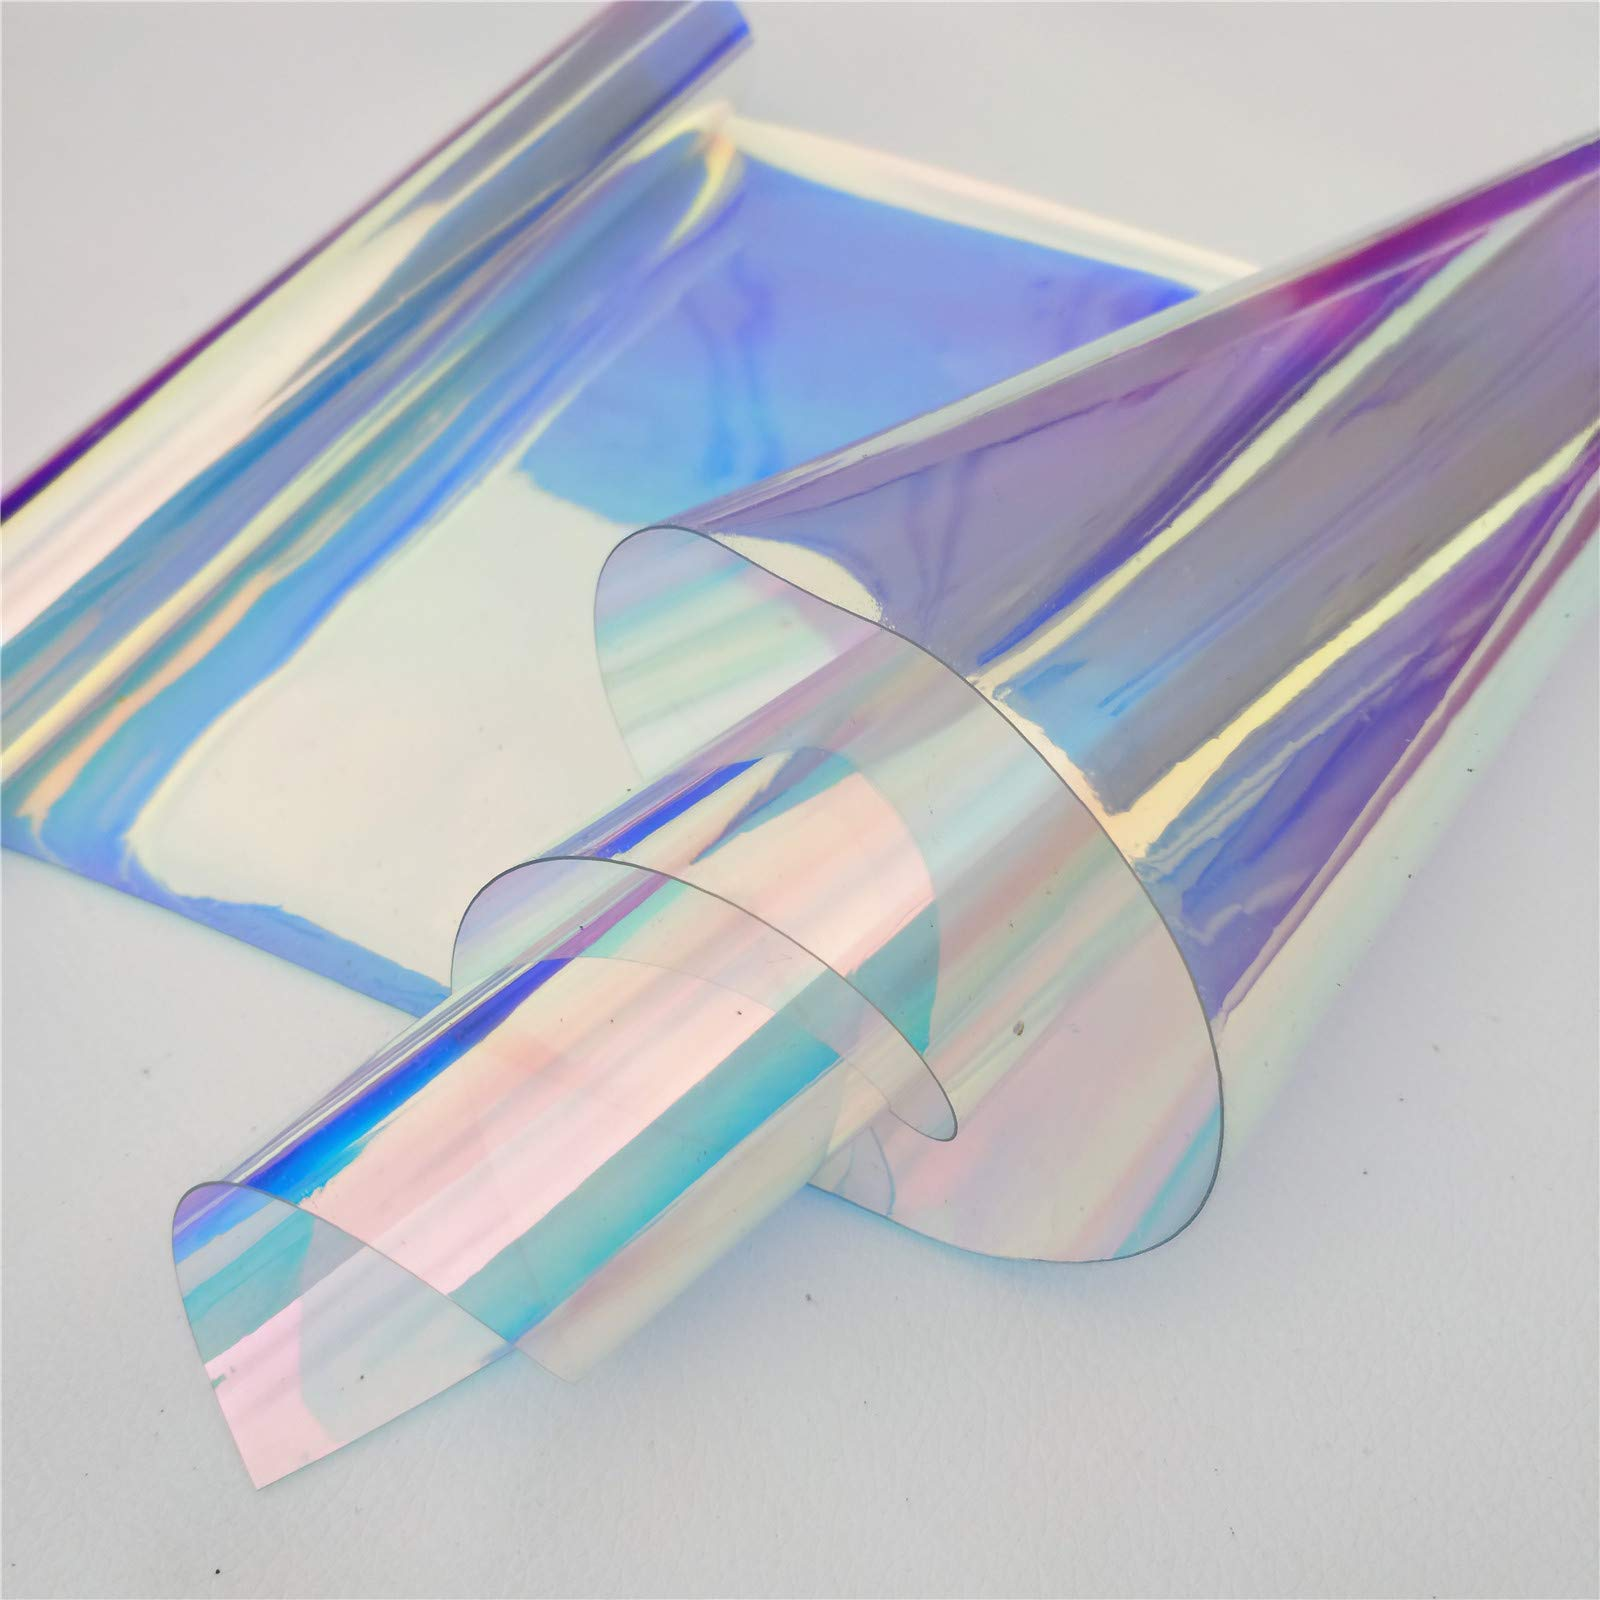 ZAIONE PVC Holographic Clear Film 5 Yards Width 37'' Roll Mirrored Foil Holographic Vinyl Graphic Fabric for Shoes Bag Sewing Patchwork DIY Bow Craft Applique (Blue)